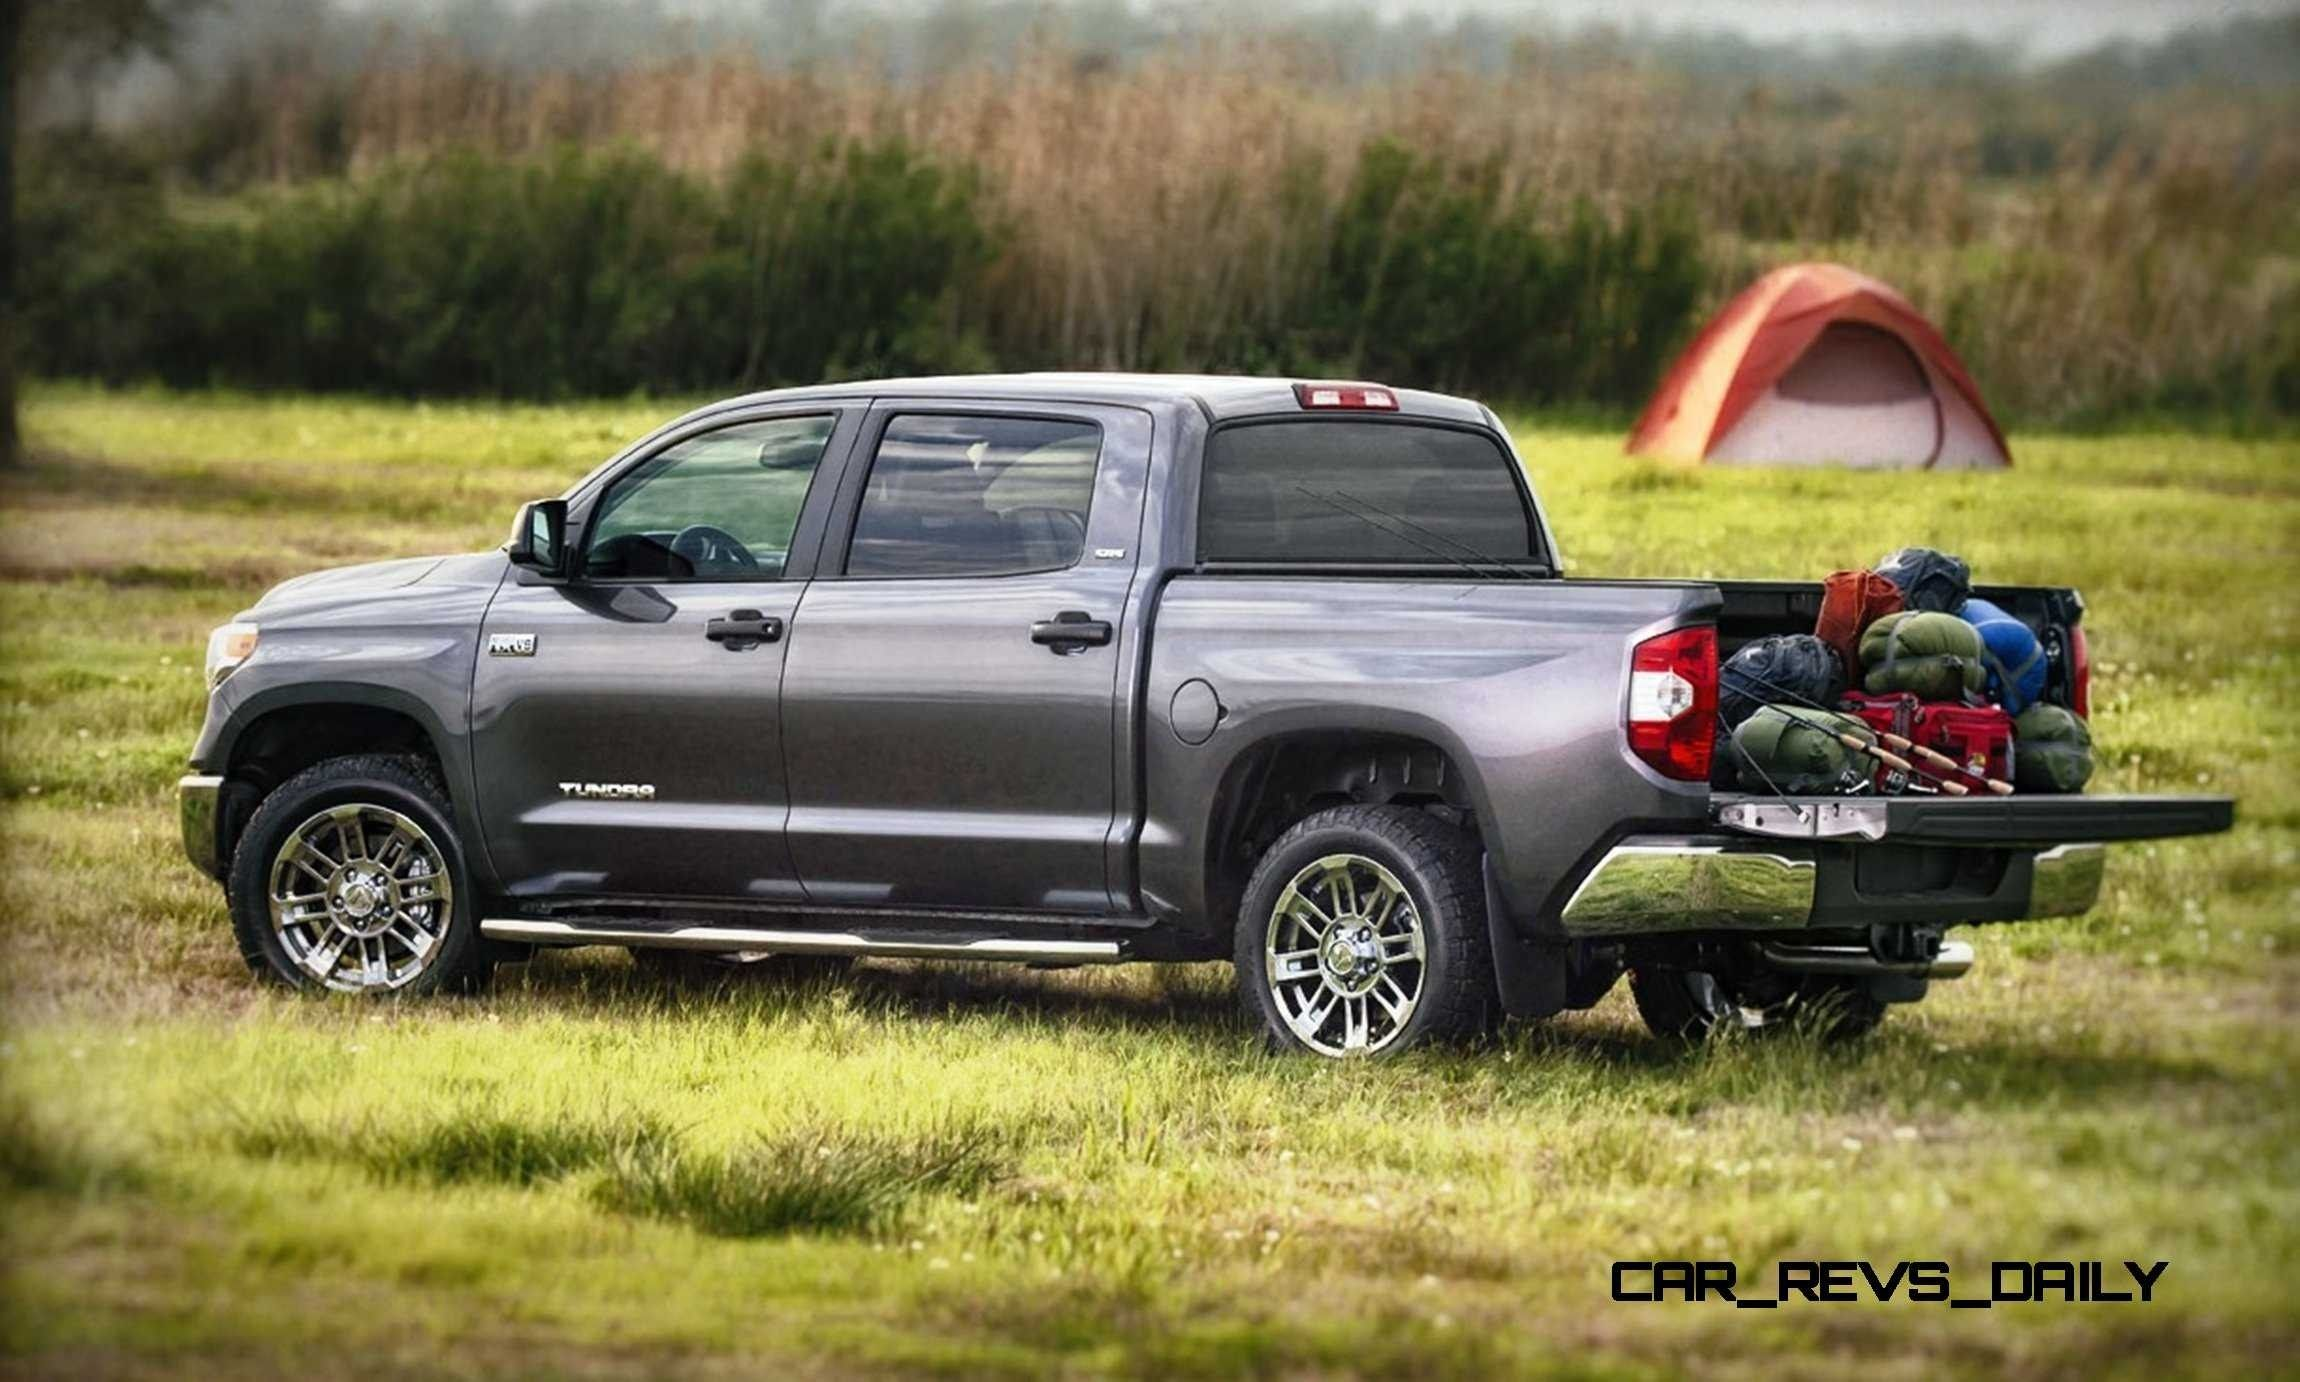 2019 Toyota Tundra Bass Pro Shops Off Road Review and Specs